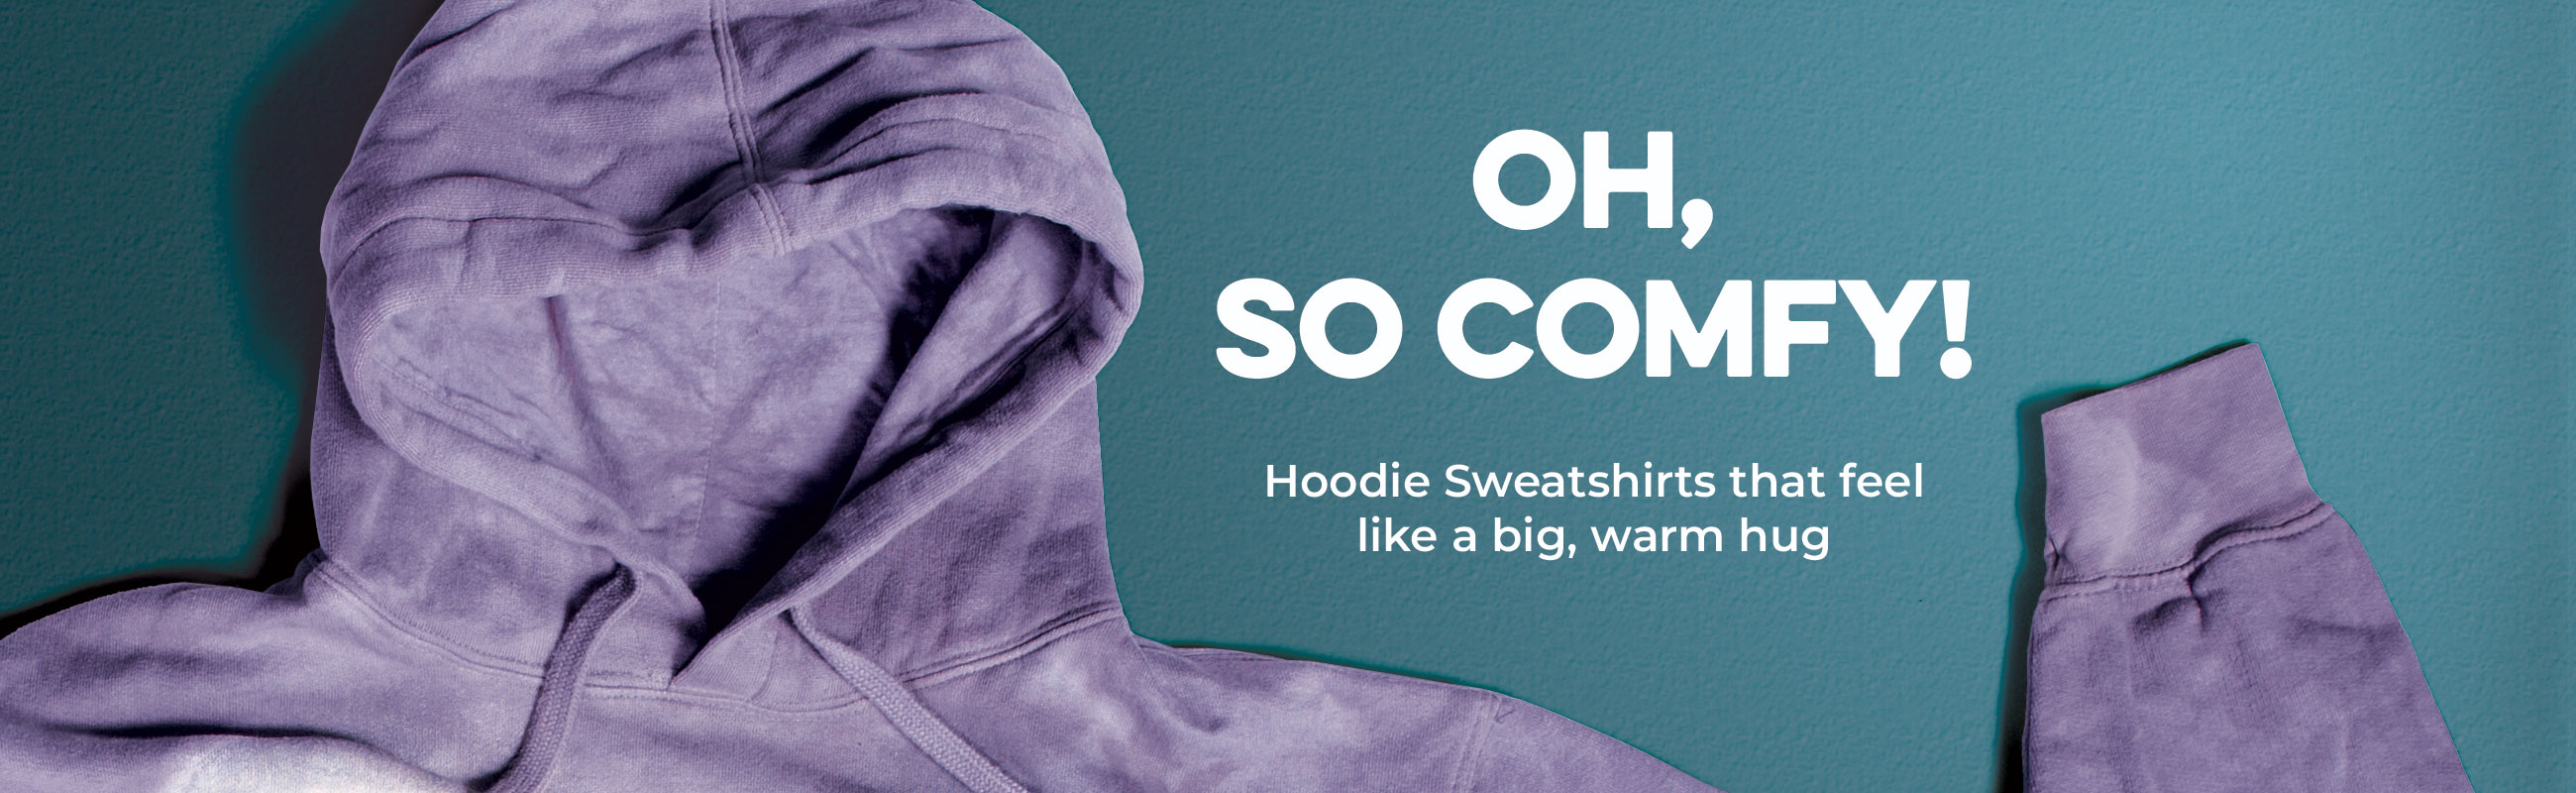 banner-category-hoodies-rt.jpg